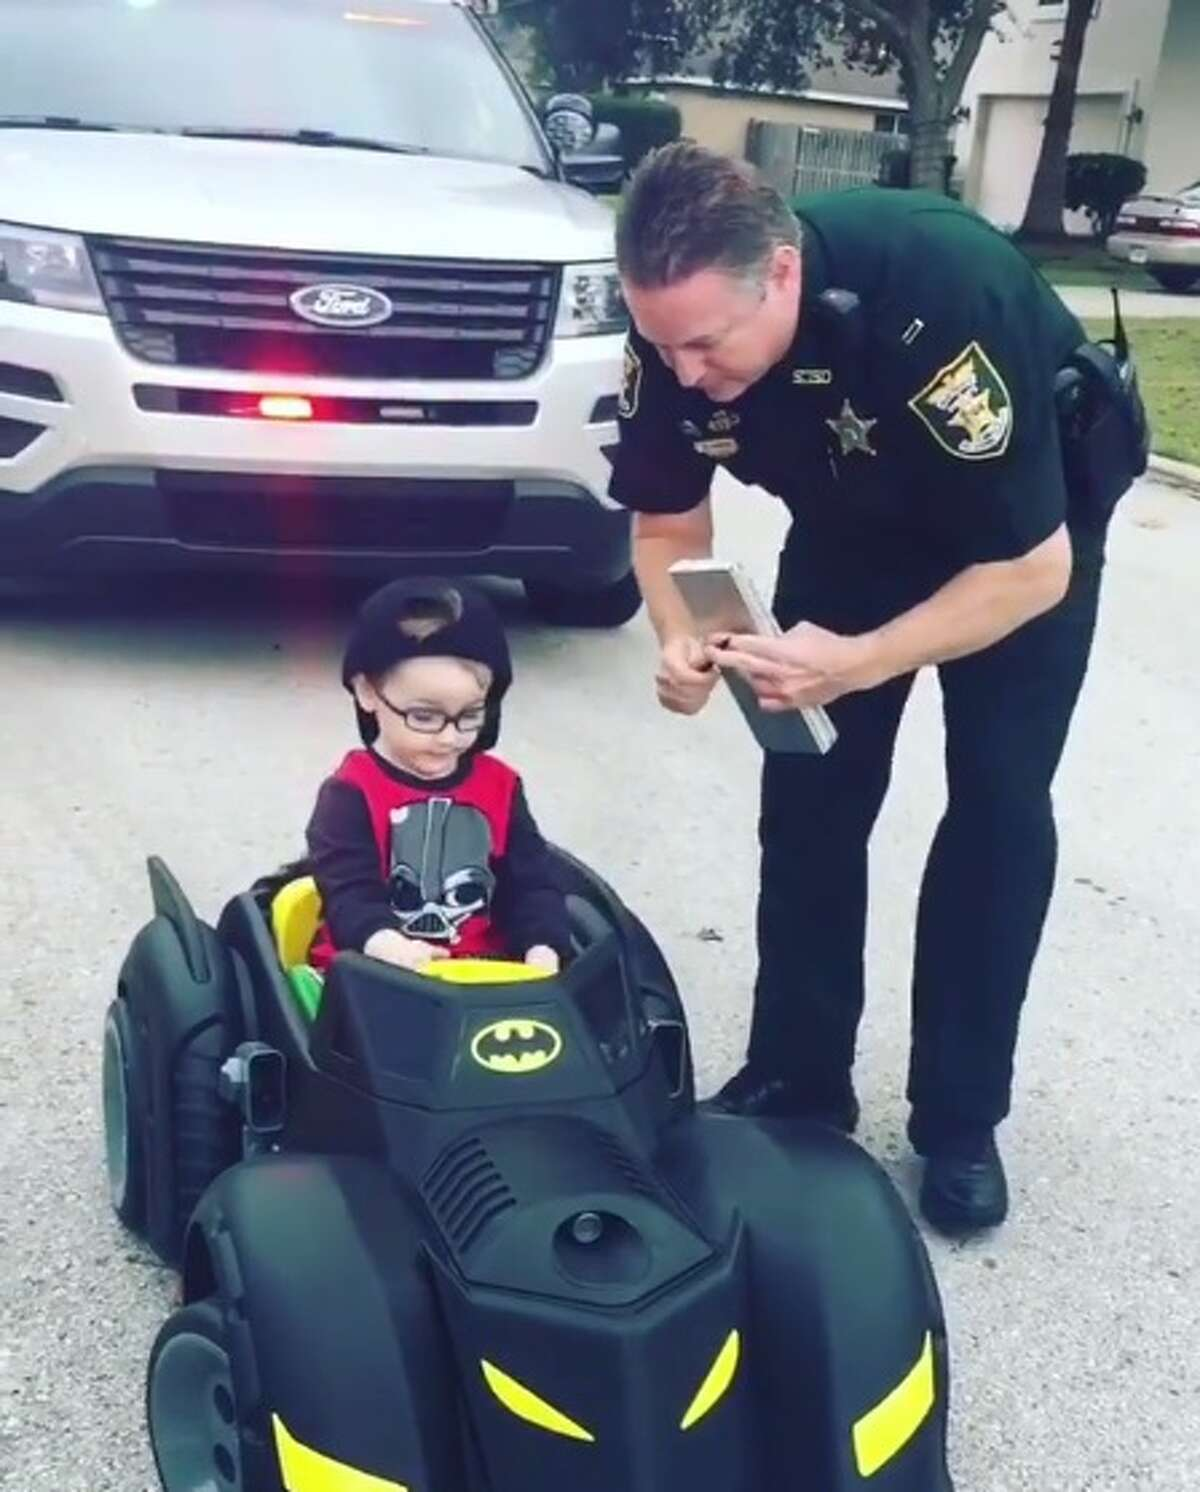 Melissa Brown's 2-year-old son, Colton, was pulled over by his grandfather, an officer, in northeast Florida.